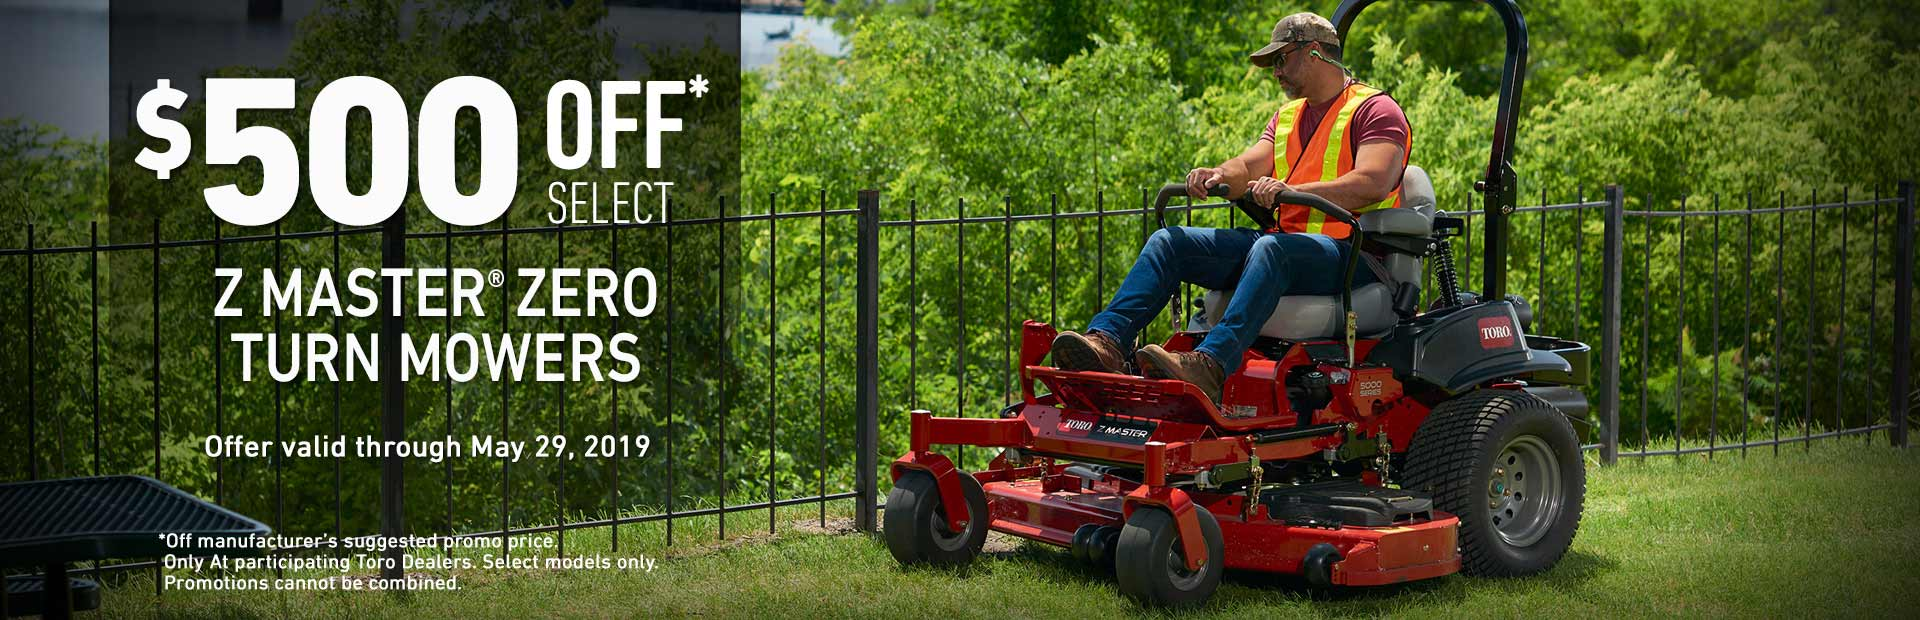 Toro: $500 Off Select ZMaster5000 and ZMaster5000 MyRIDE